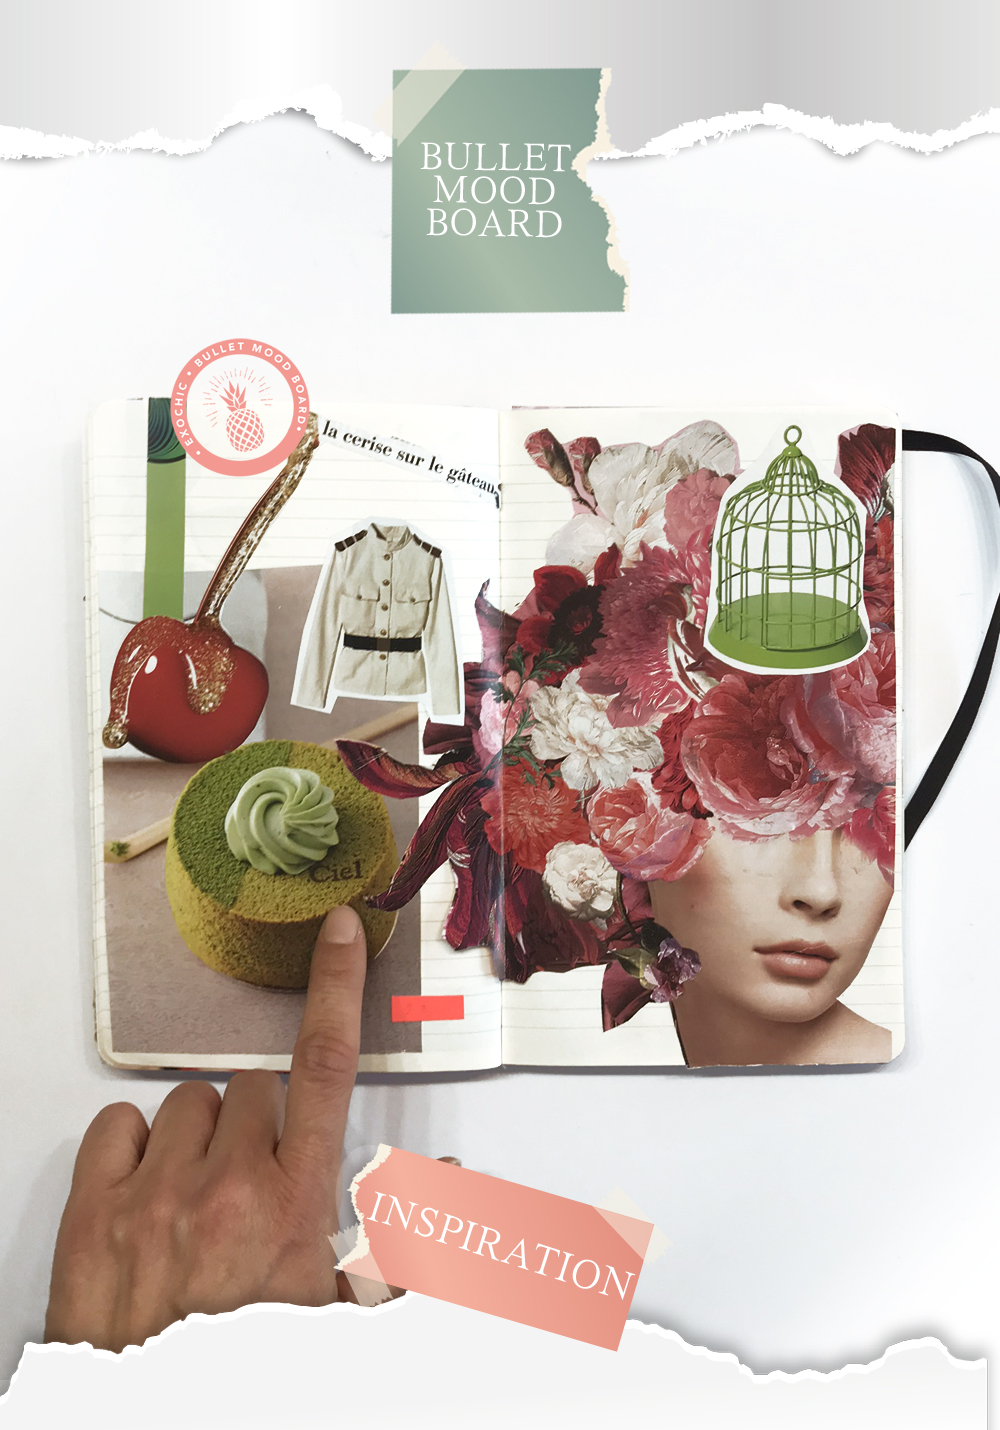 Air Chic Design:disque externe:EXOChic:1 -POSTS:1 - ARTICLES:2018:03 - MARS:03 Vision BOARD:Image blog:Bullet mood board exochic 9.jpg